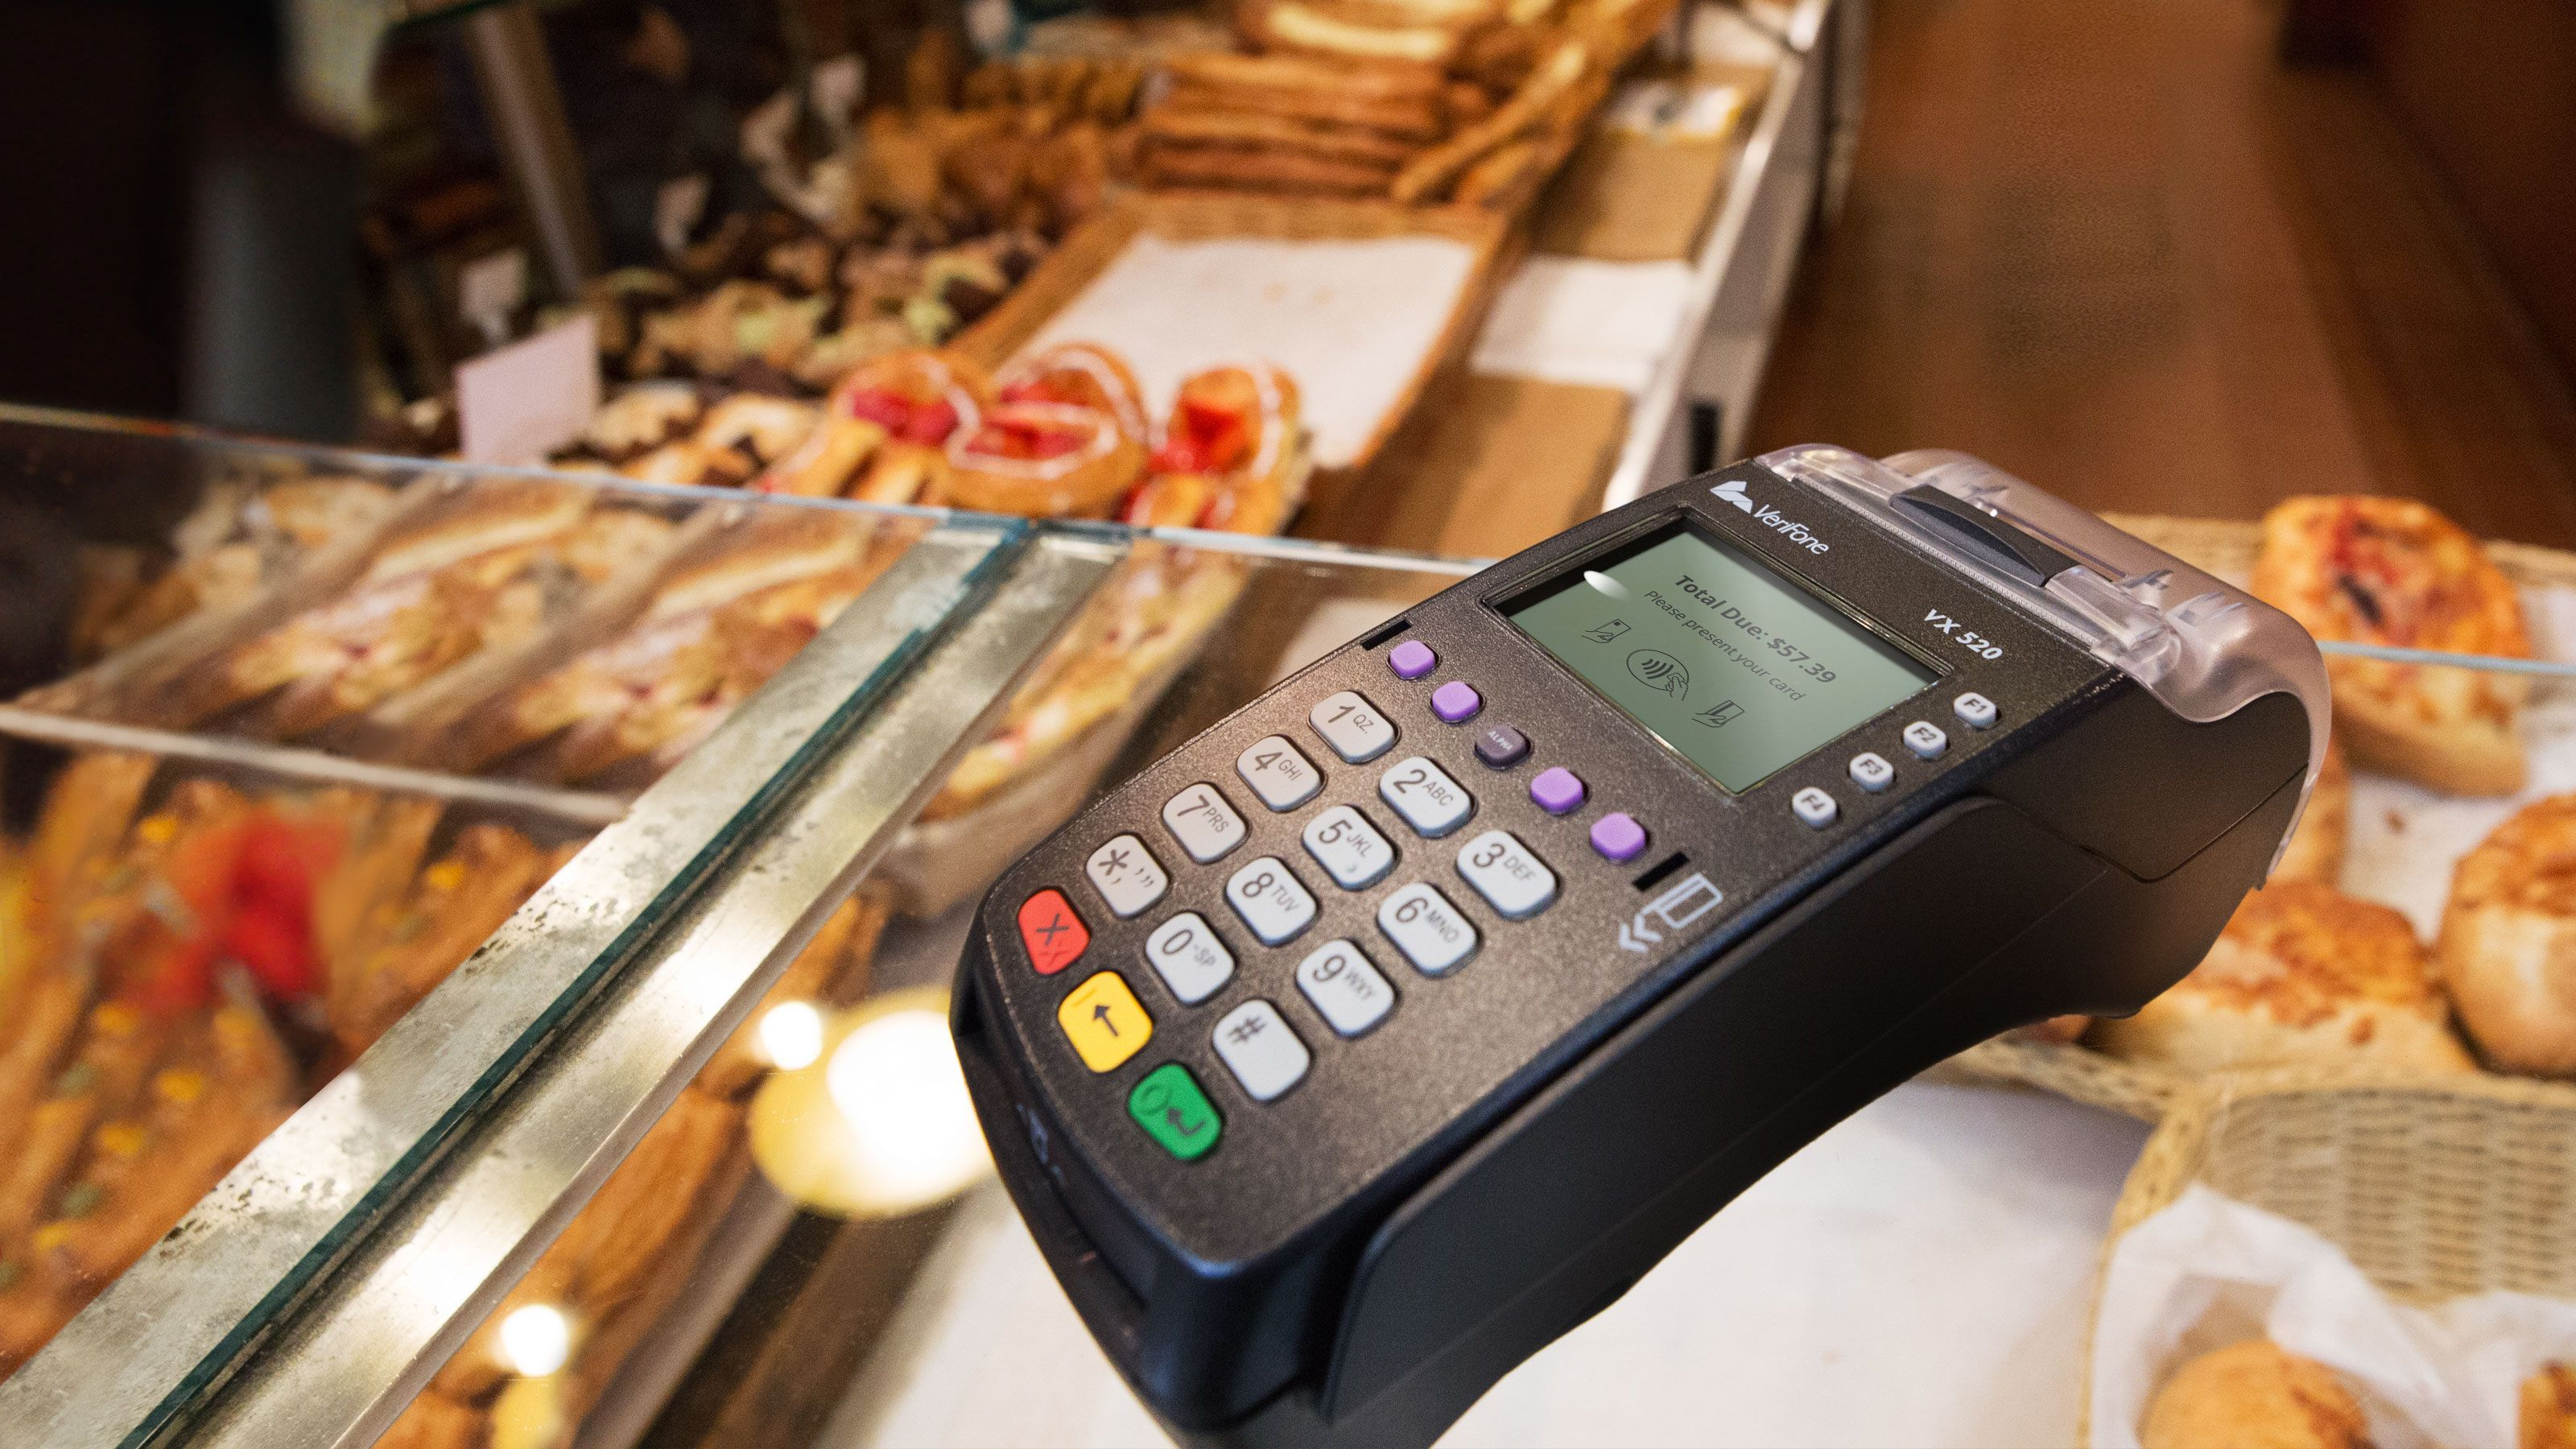 Our free wireless credit card terminal for the small business owner our free wireless credit card terminal for the small business owner that needs to accept credit colourmoves